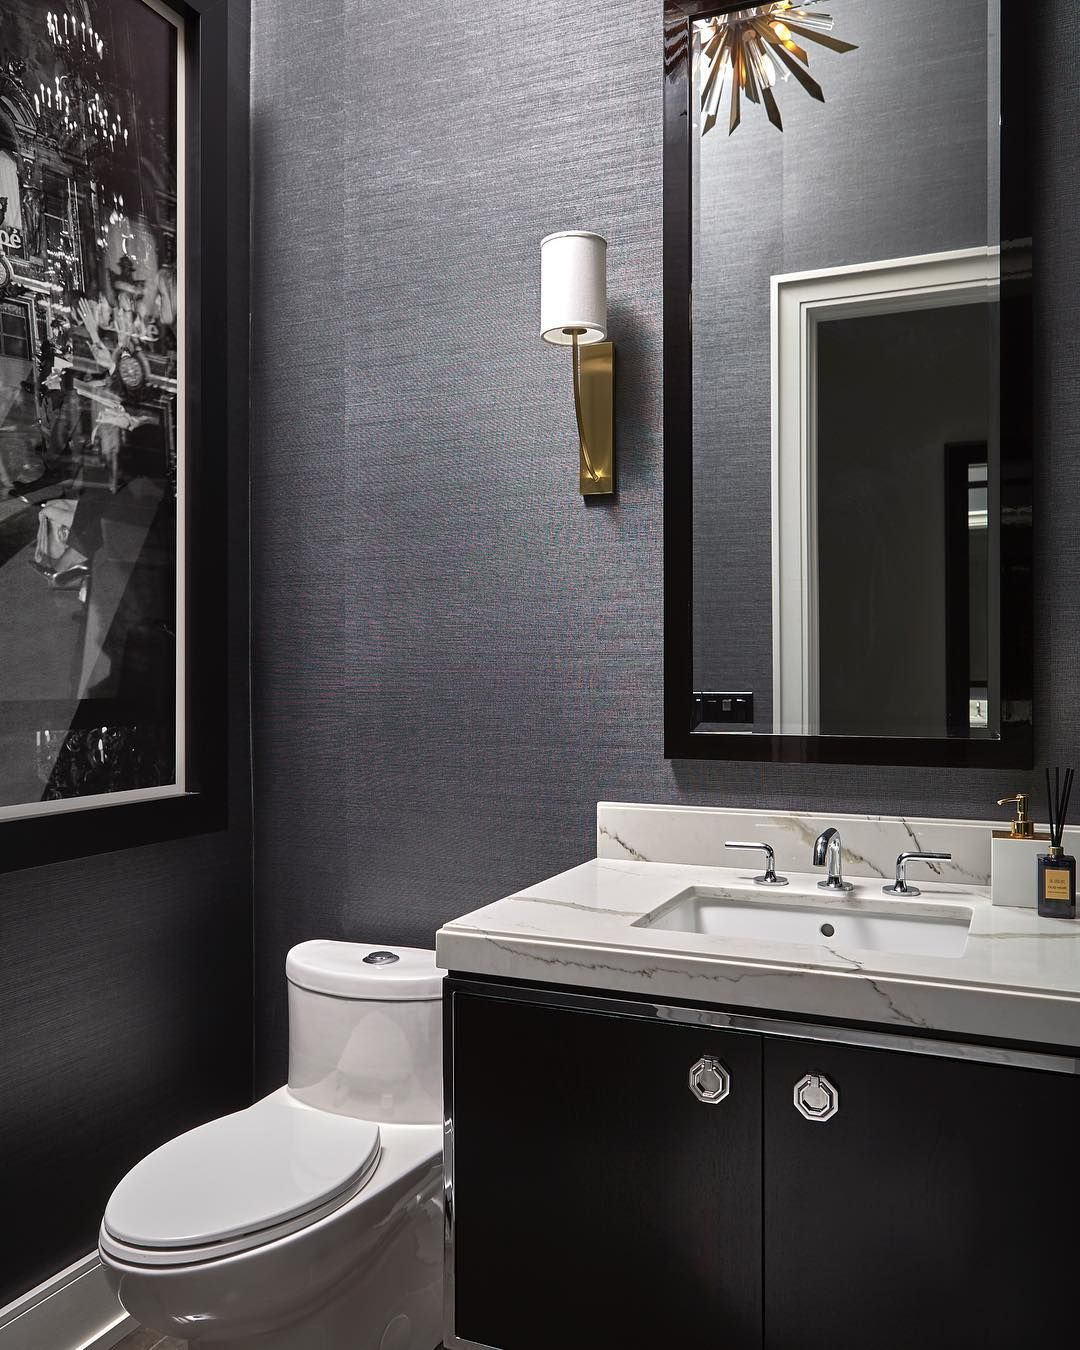 Robyn Clarke Co On Instagram Mixing Metals The Brass Light Fixtures Make A Statement In This Bathroom Light Fixtures Brass Light Fixture Black Powder Room